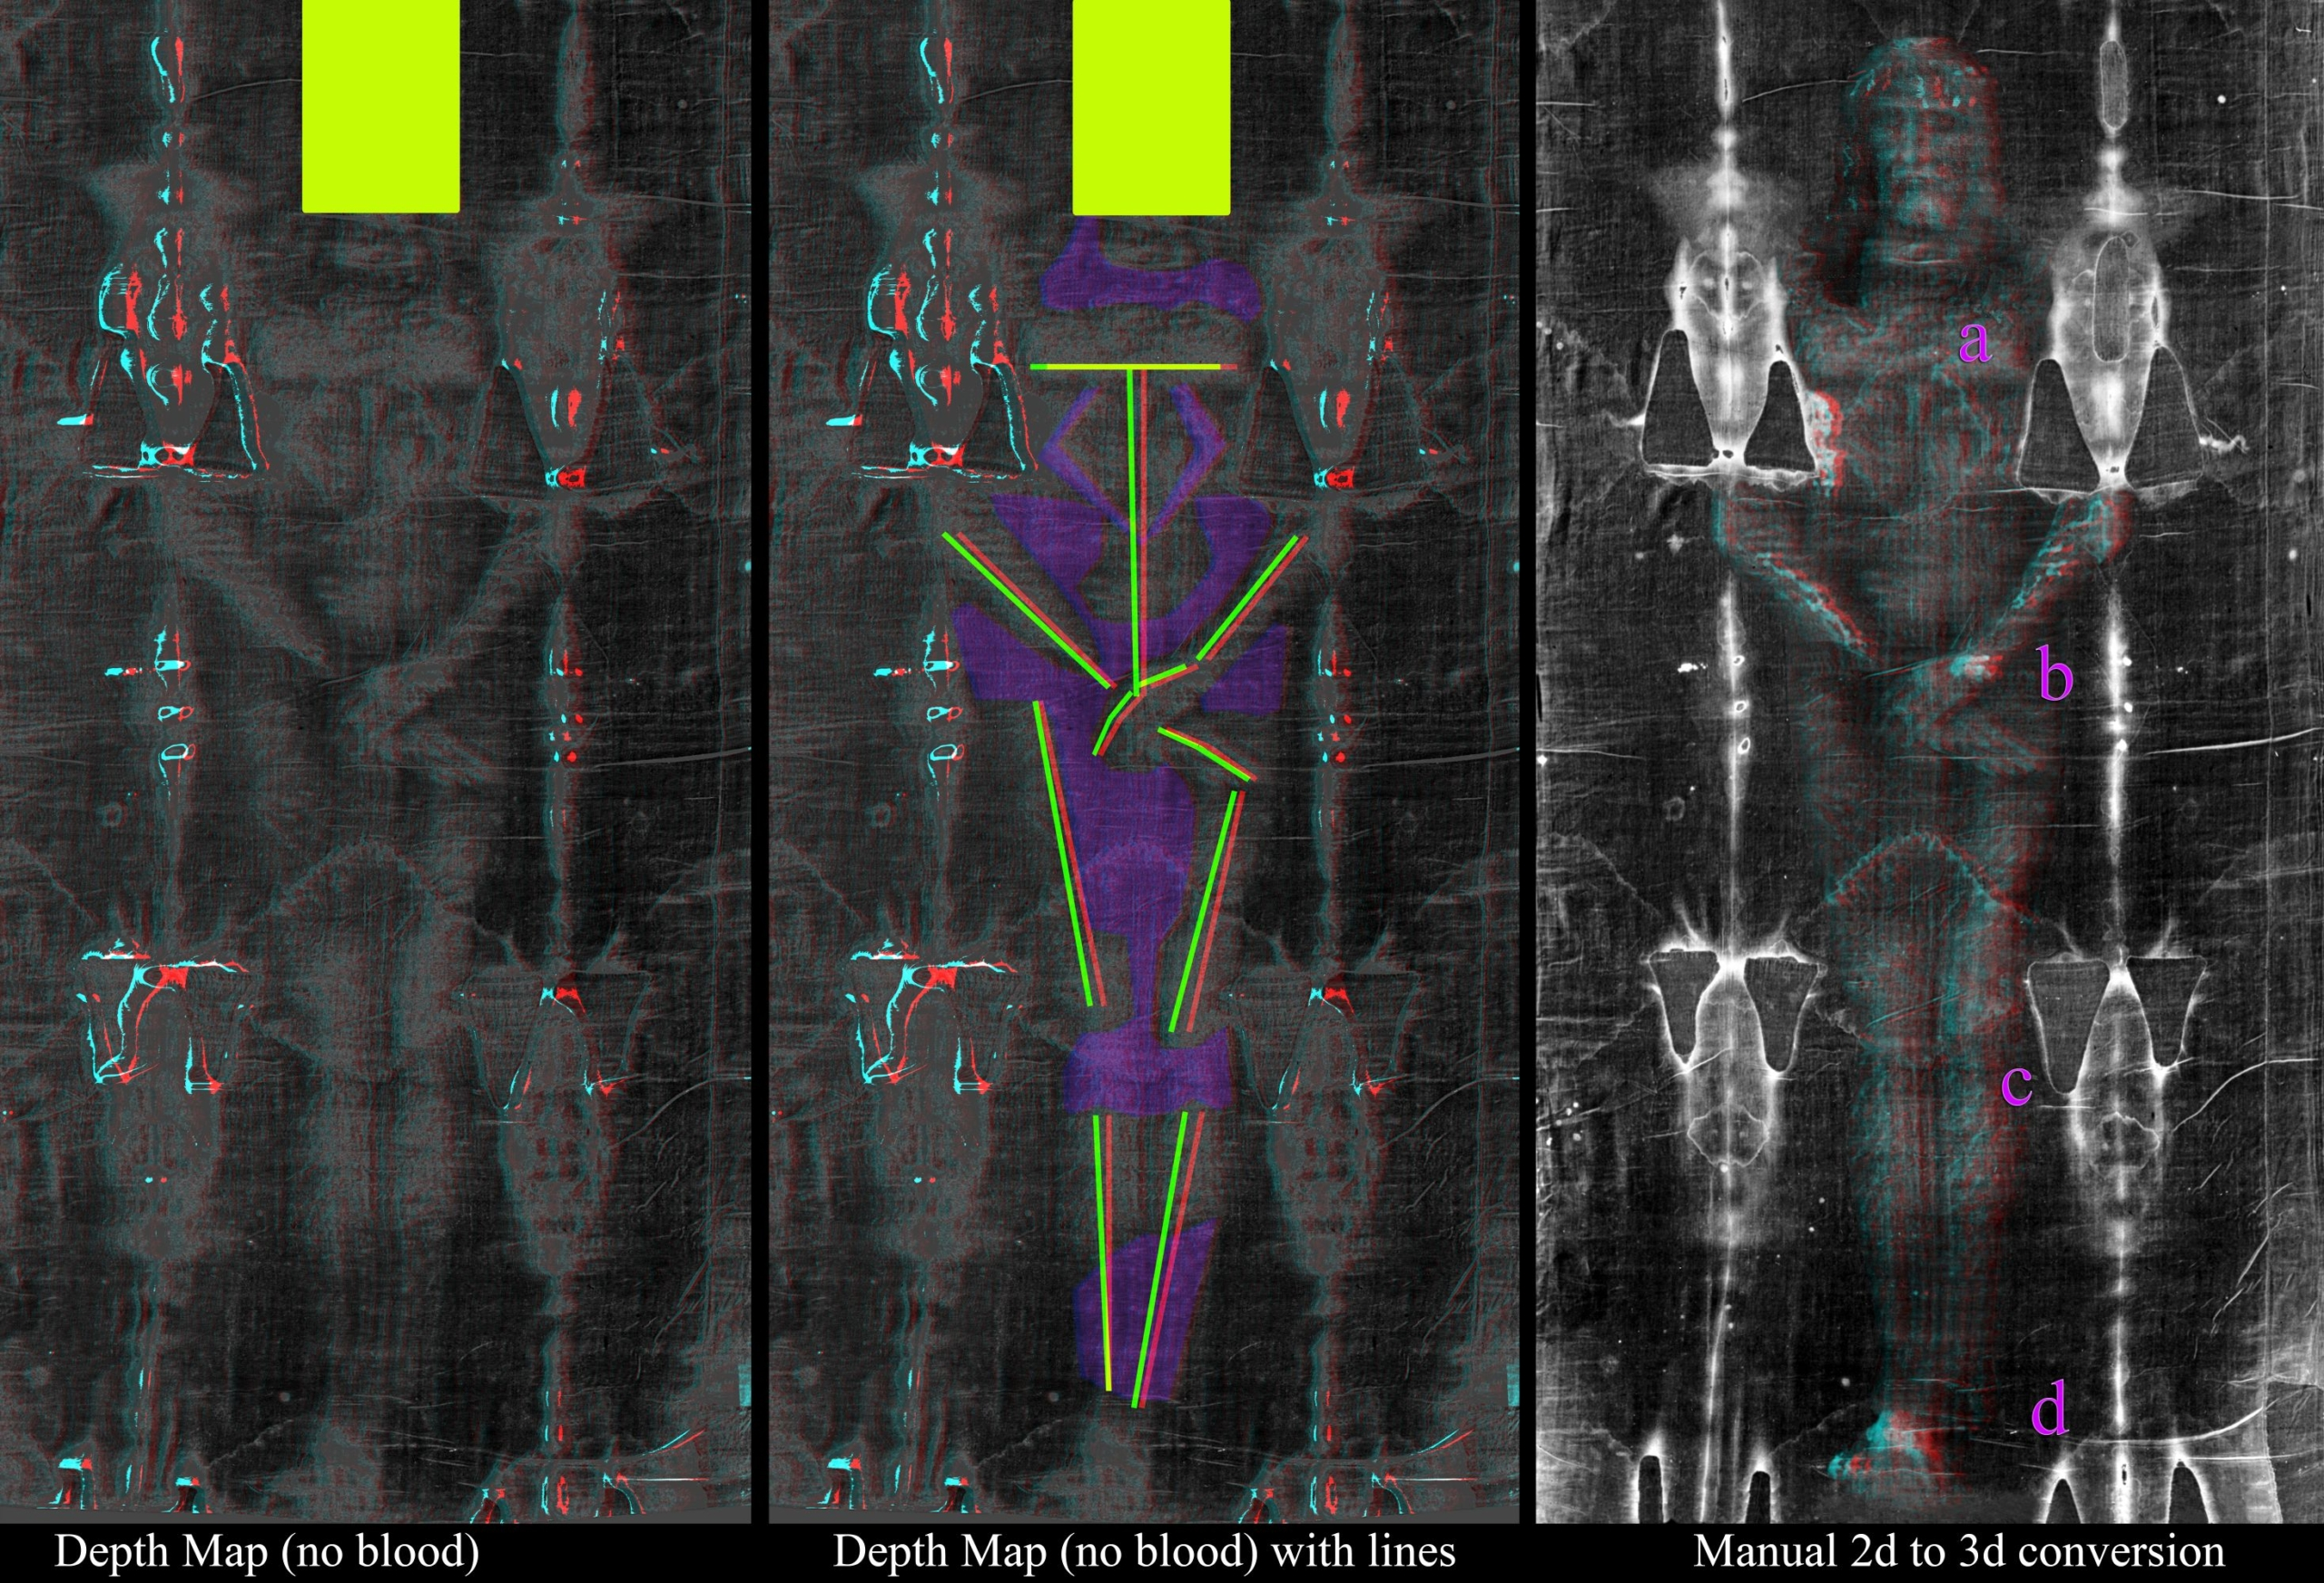 Photo A. Body front in 3D ANAGLYPH (use 3D glasses)